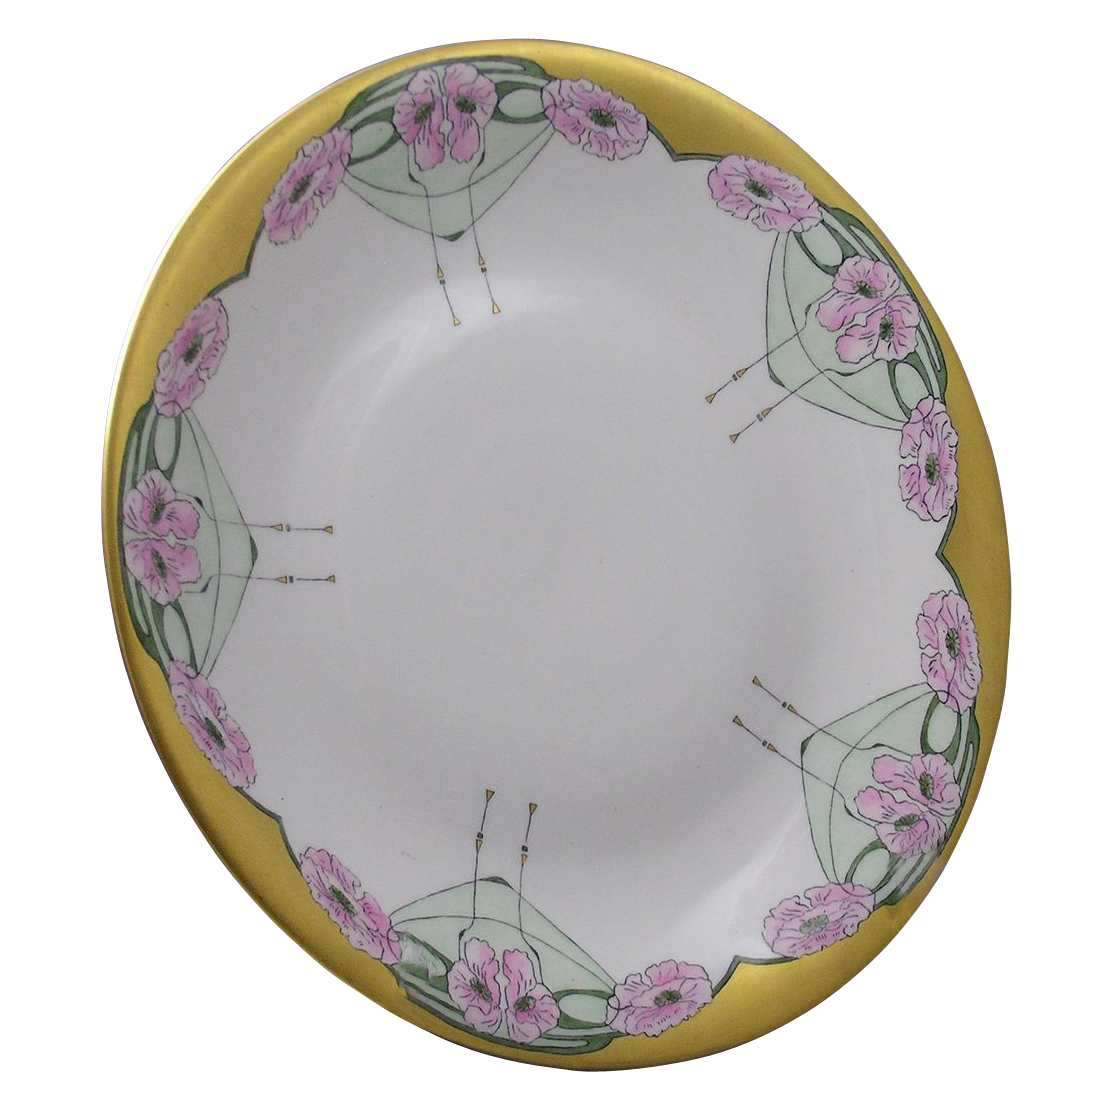 Union Ceramique (U.C.) Limoges Art Deco Poppy Motif Plate/Charger (c.1909-1938)